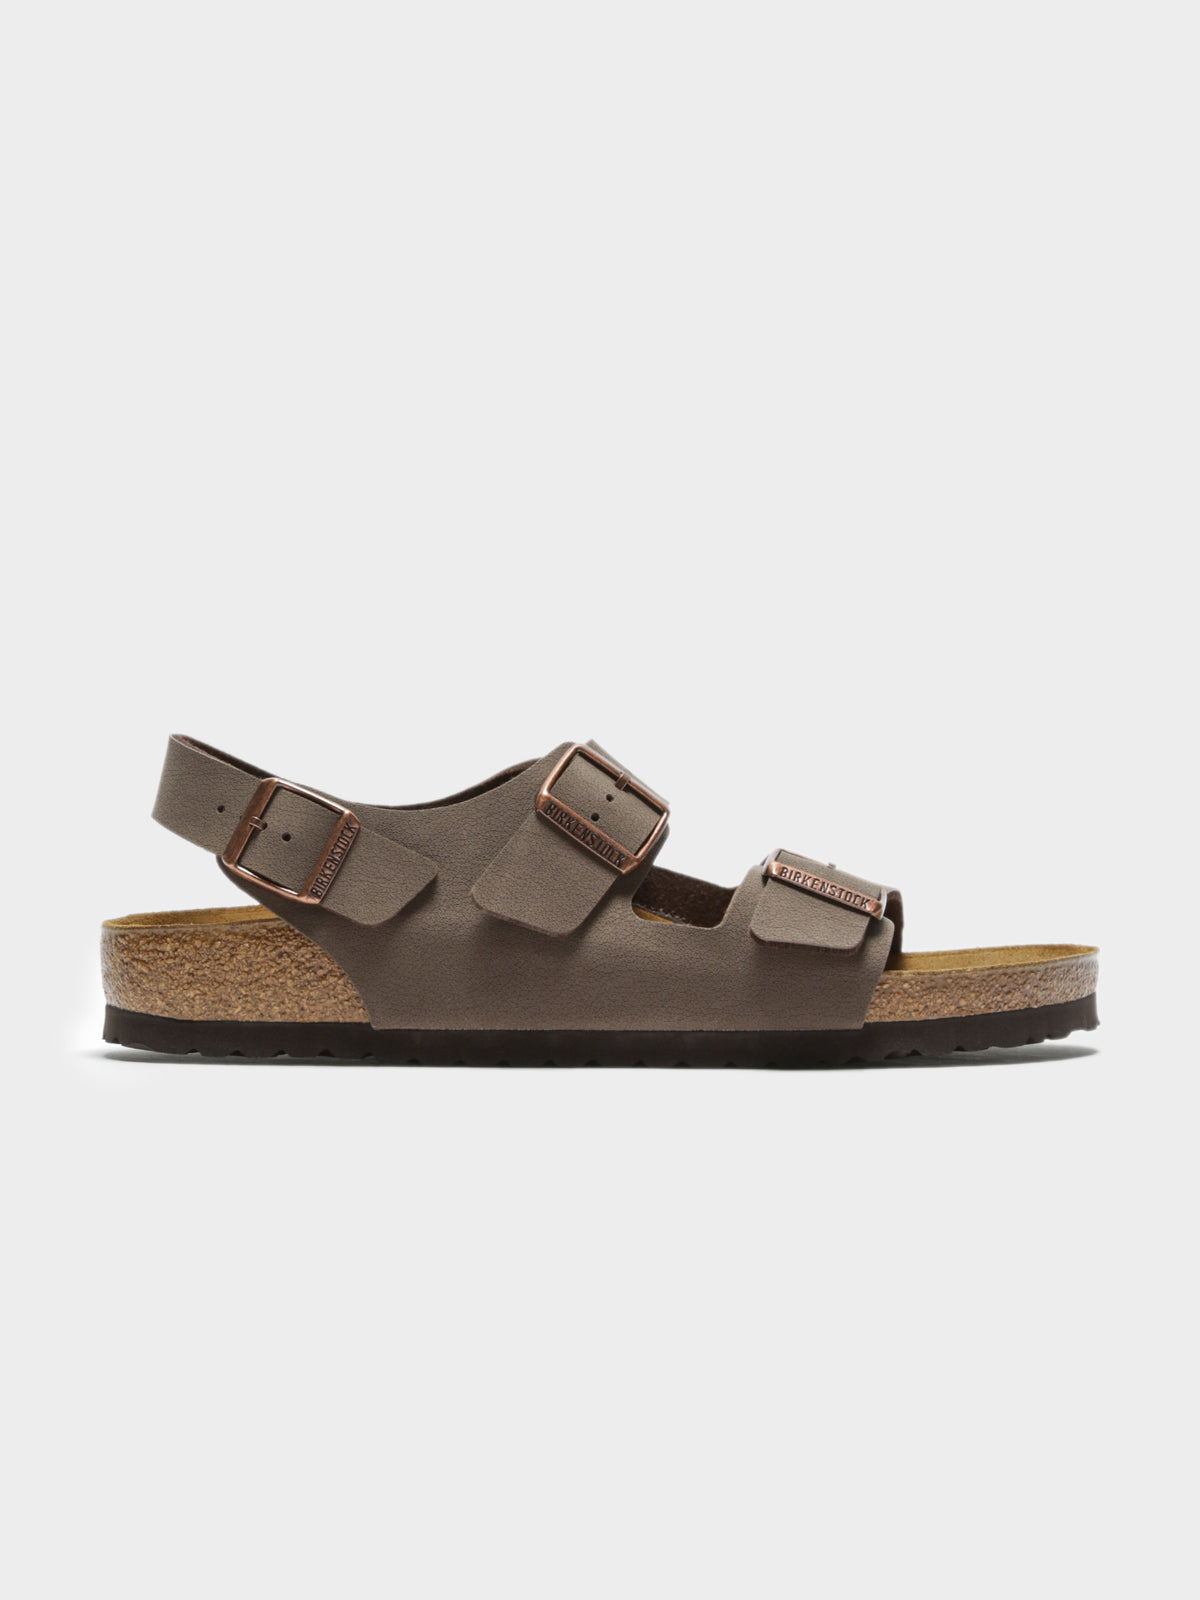 Unisex Milano Sandle in Mocca